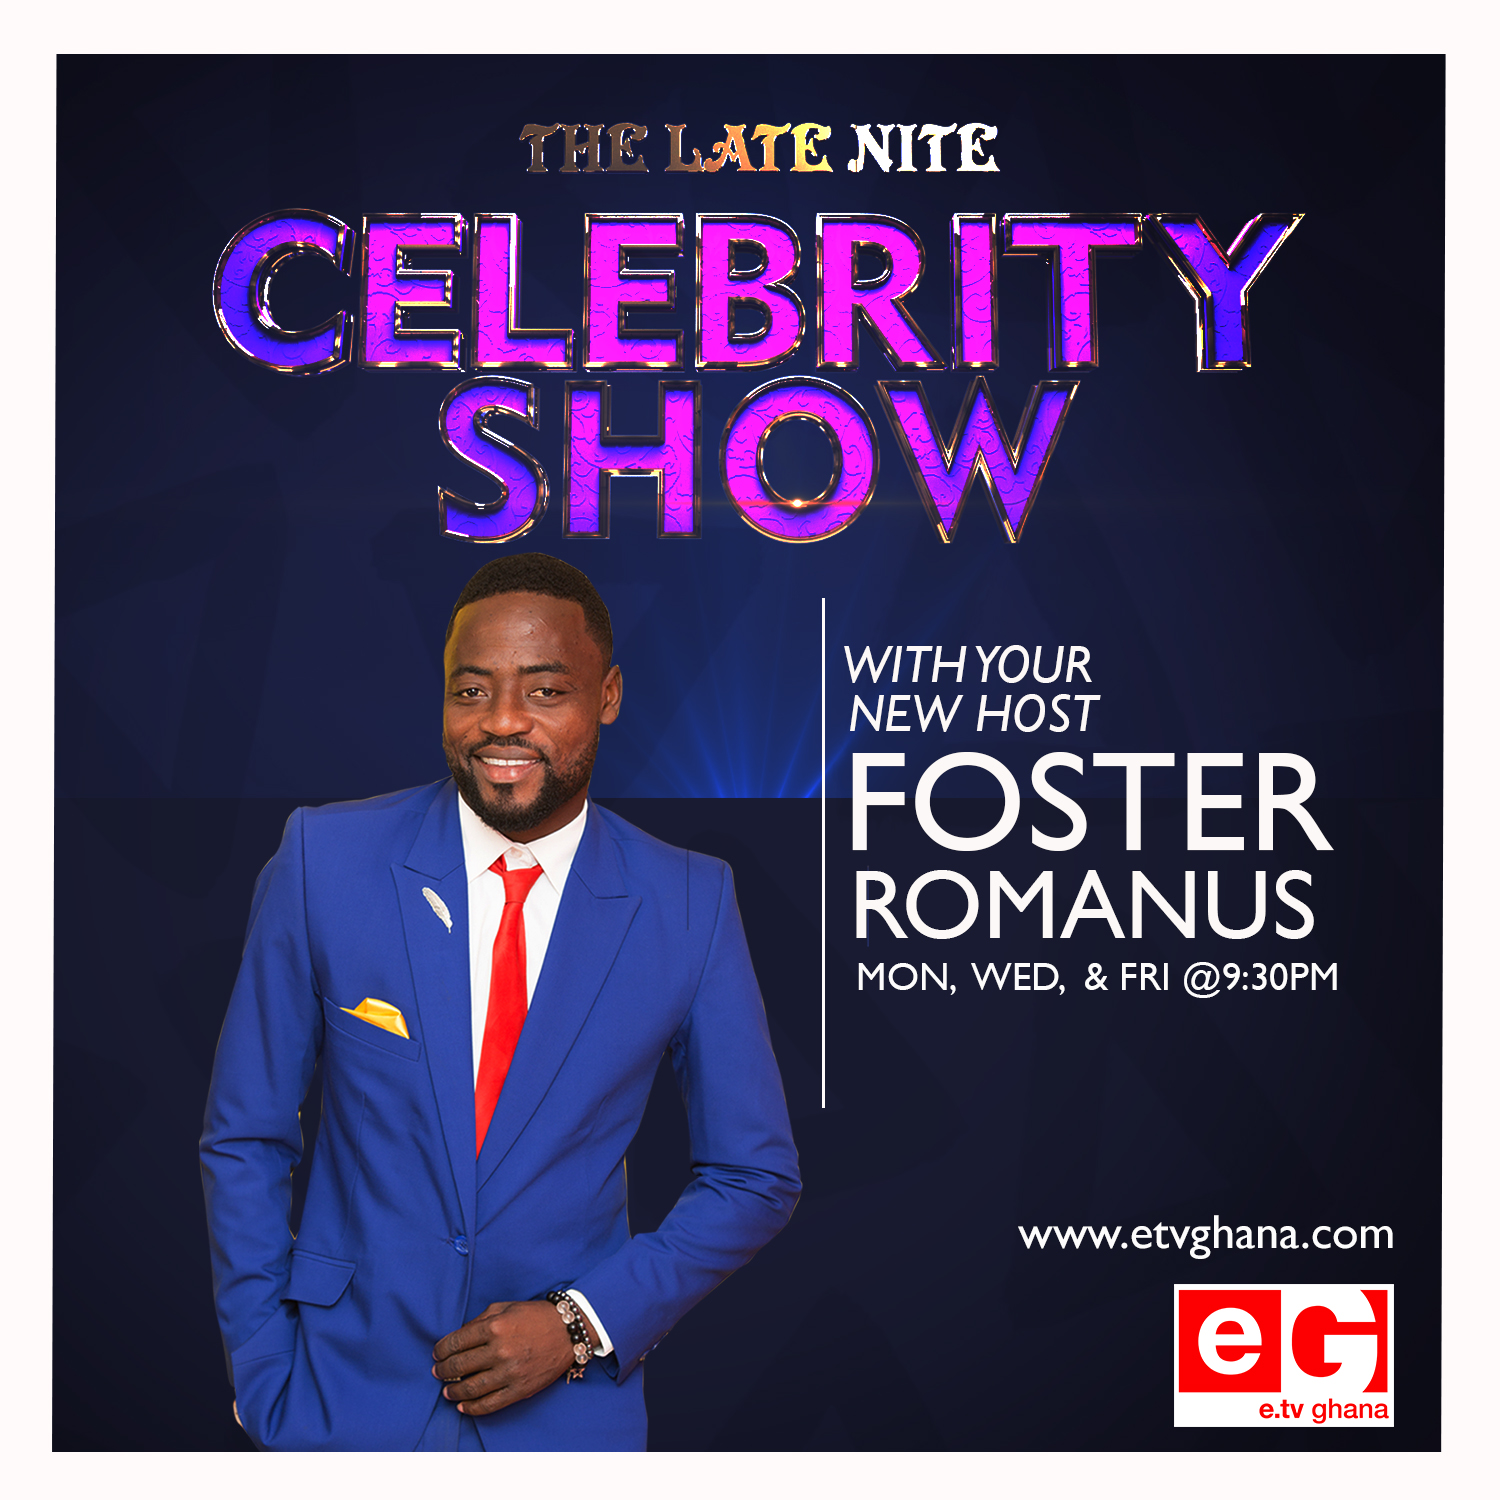 Foster Romanus Takes Over Late Nite Celebrity Show